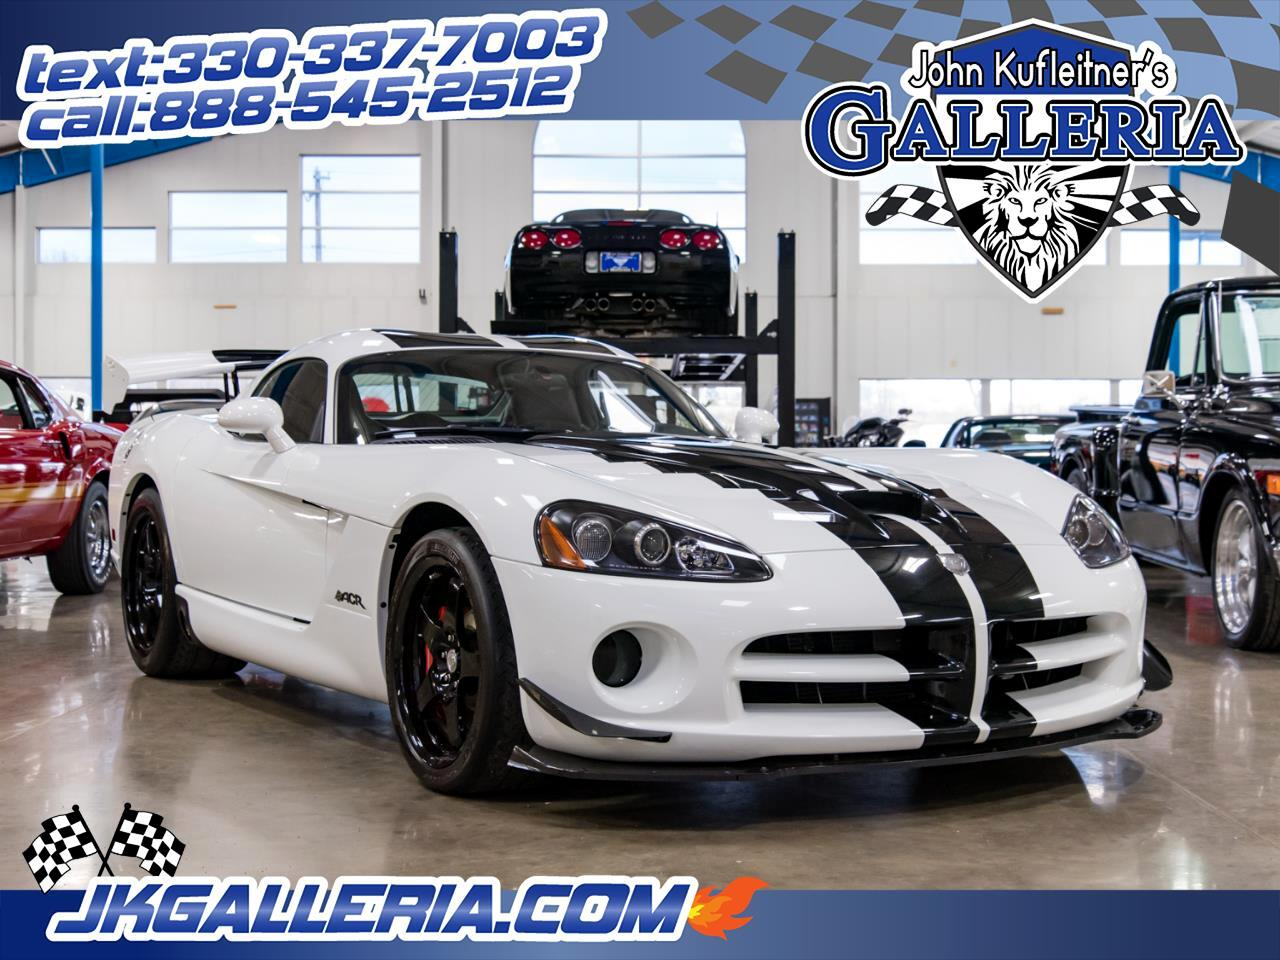 2010 Dodge Viper 2dr Cpe SRT10 ACR *Ltd Avail*